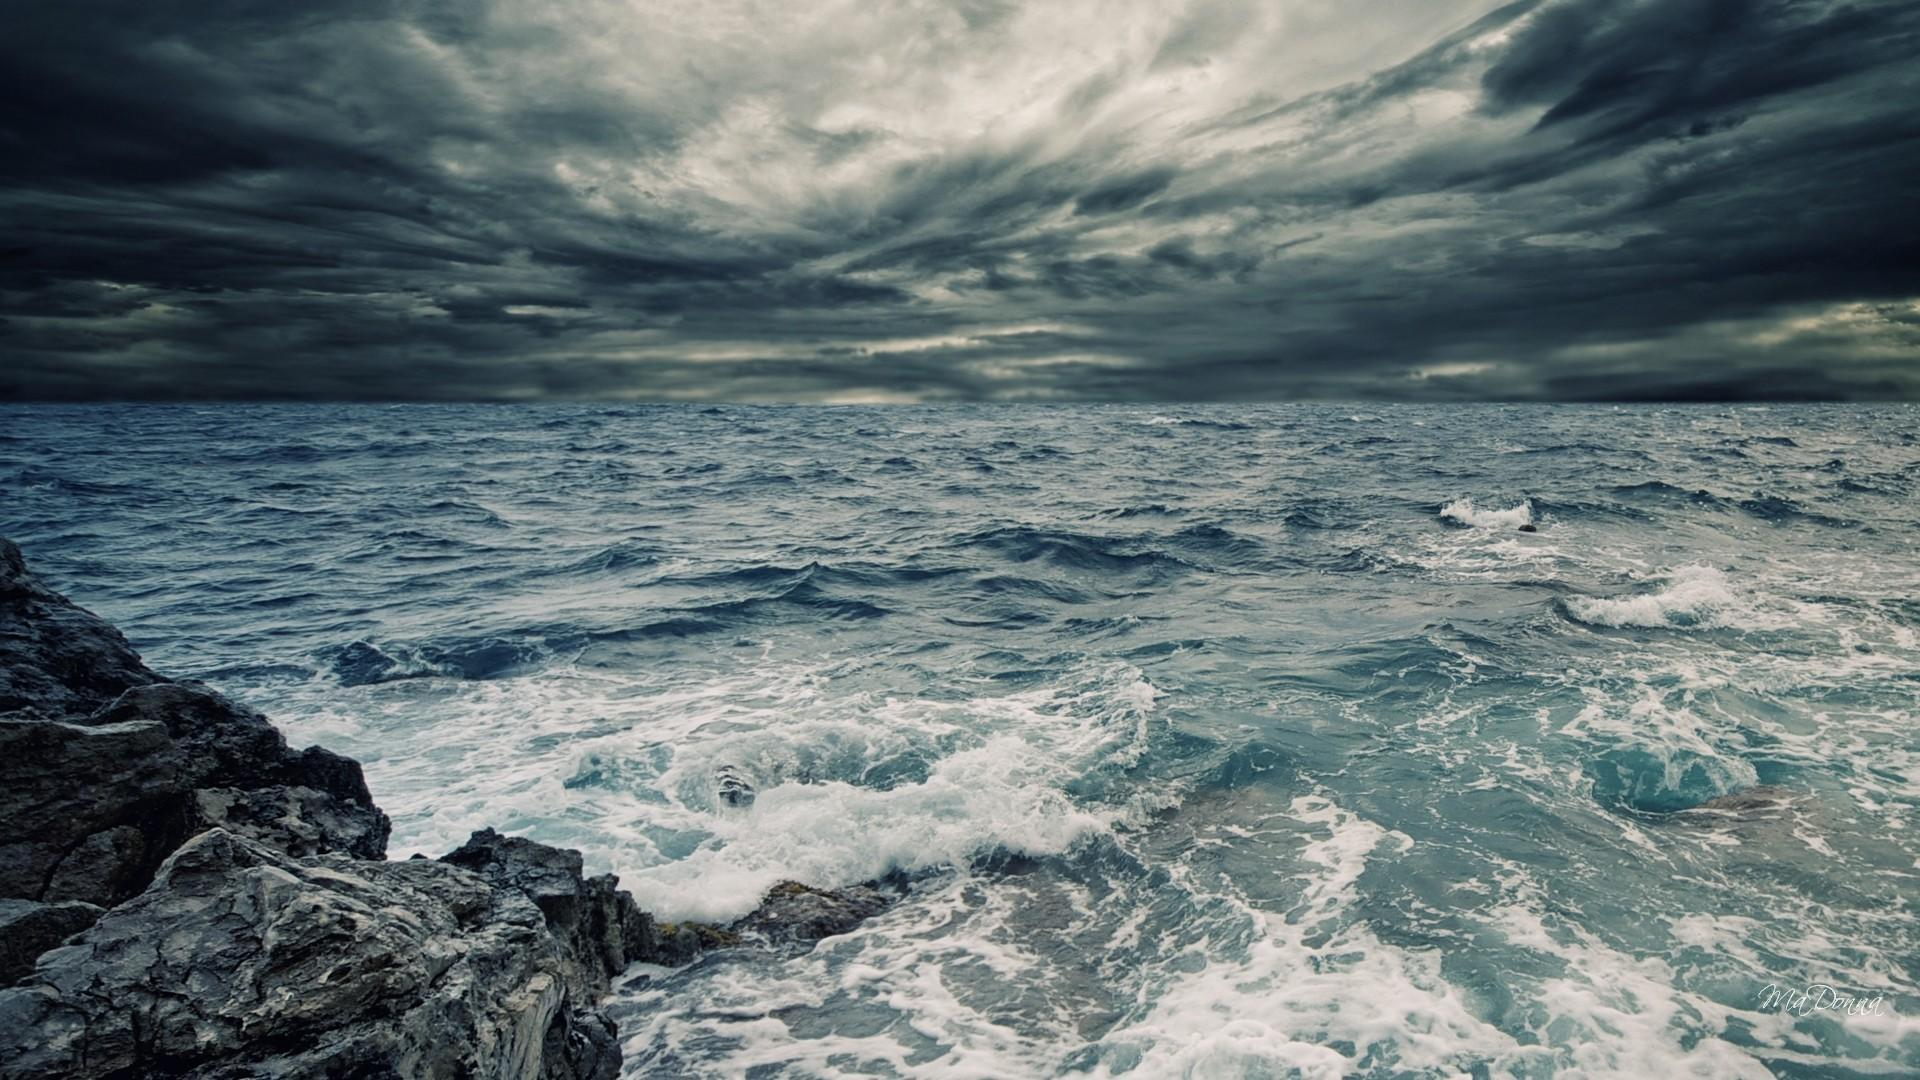 Stormy Ocean Wallpapers 1920x1080